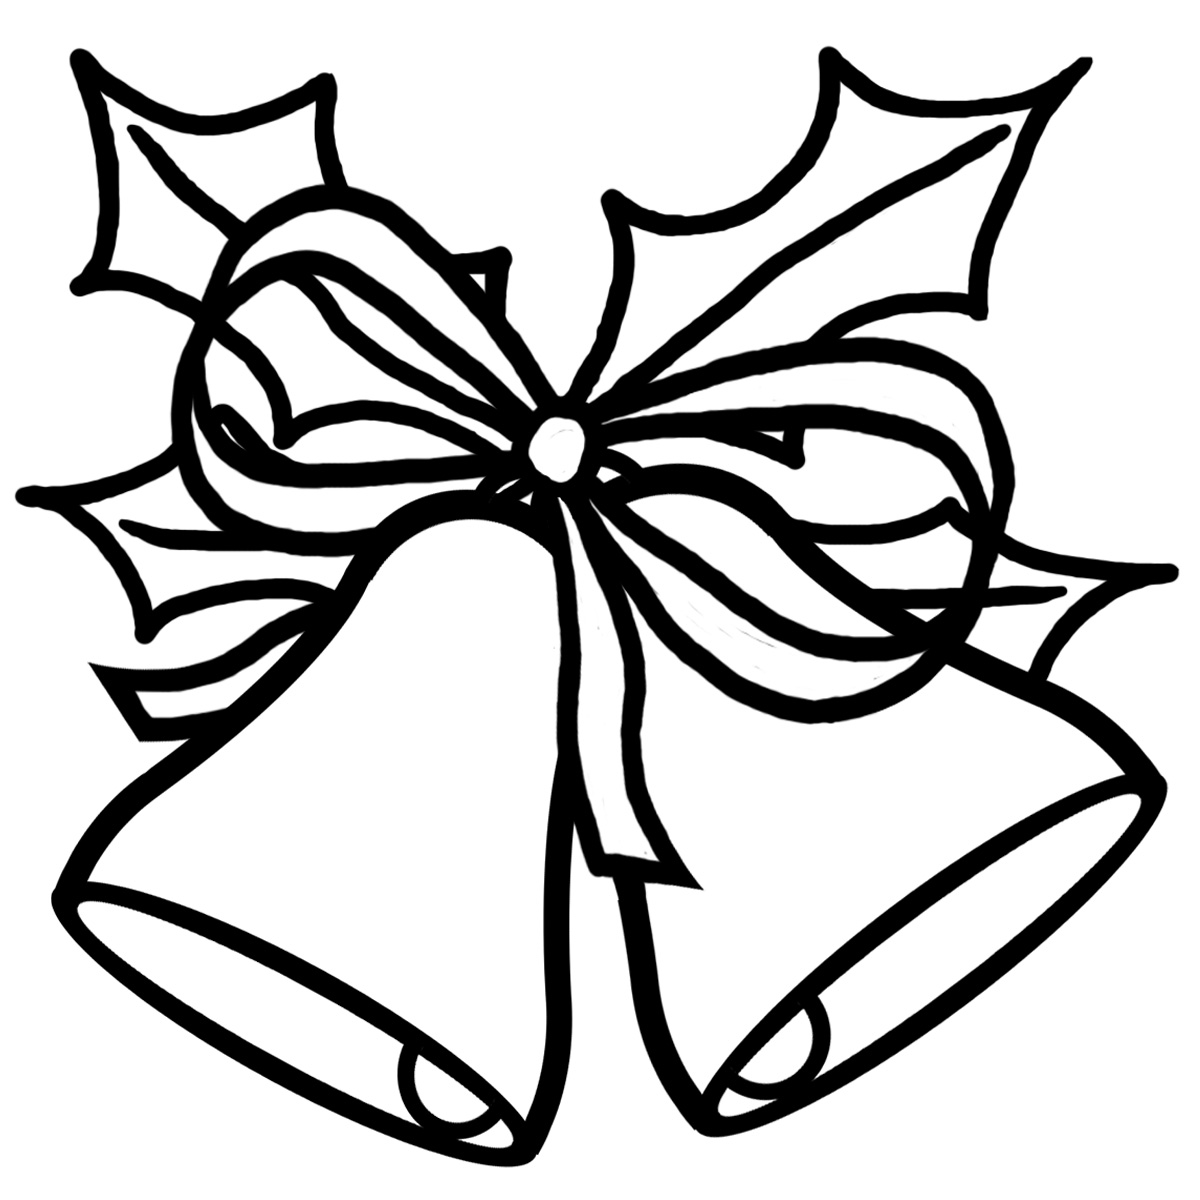 Christmas Star Clip Art Black And White -Christmas Star Clip Art Black And White Clipart Panda Free Clipart-14